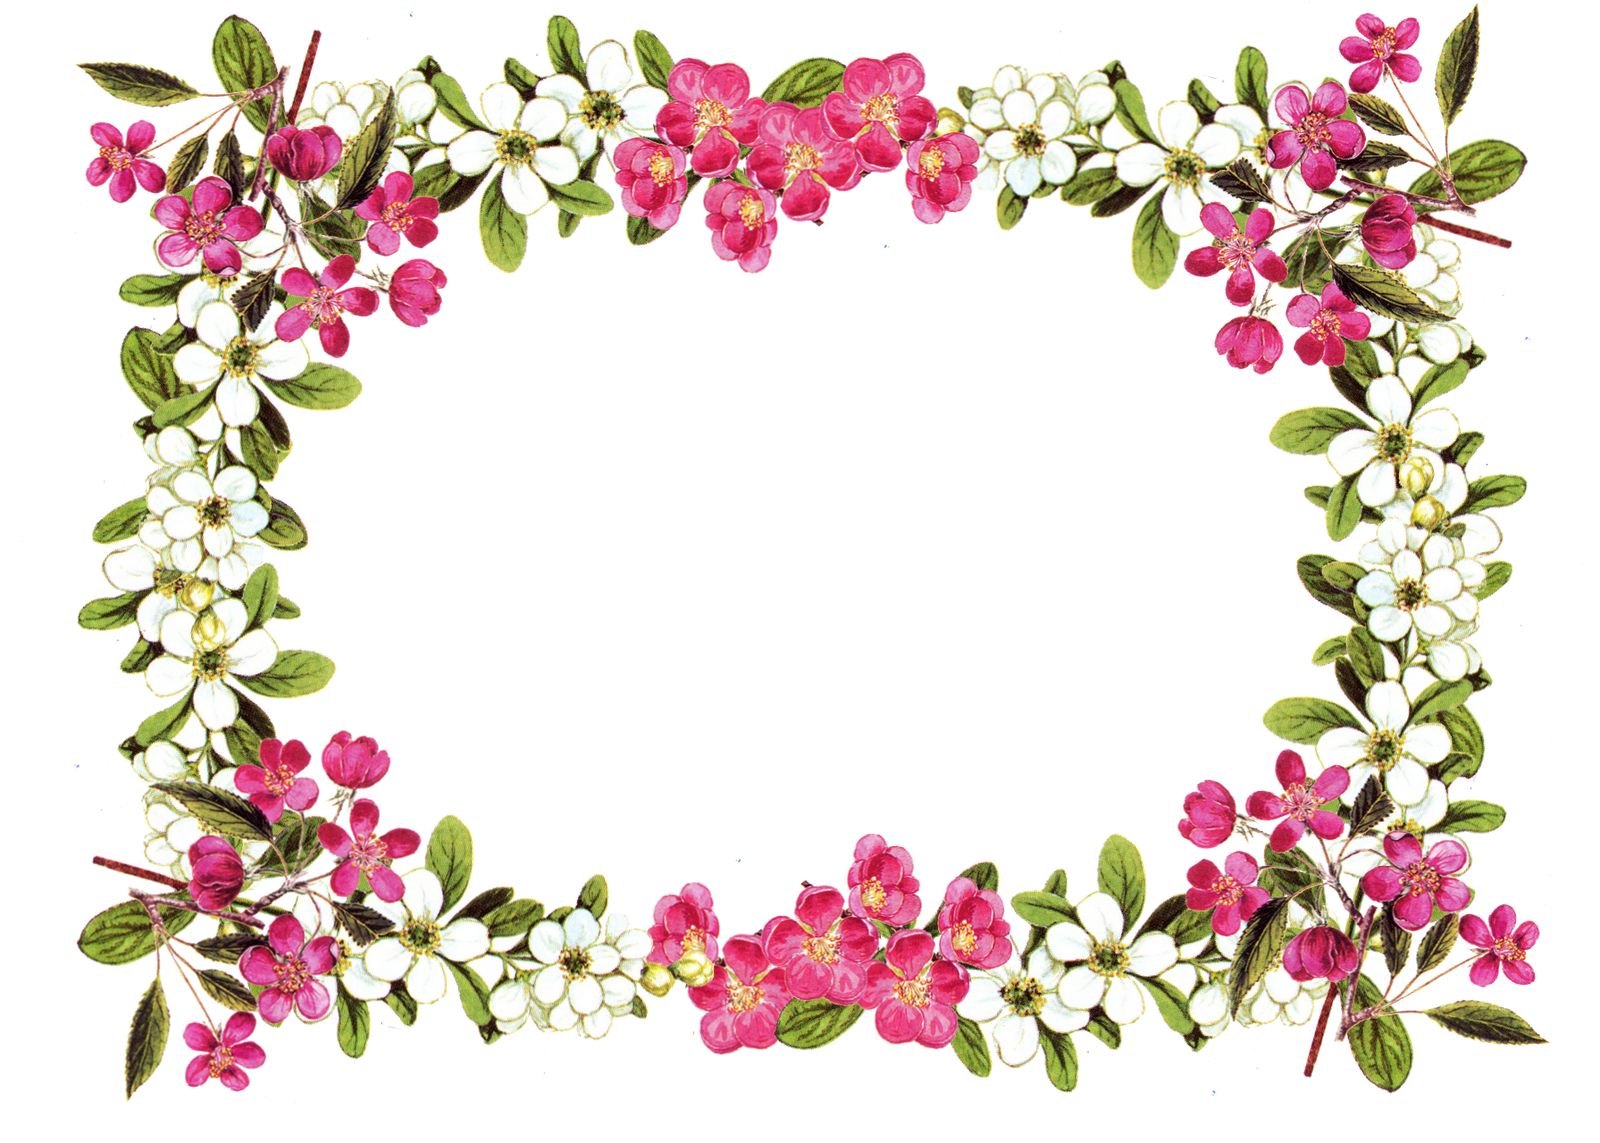 Flower borders free download clip black and white vintage flower frame / border png; free download; digital ... clip black and white